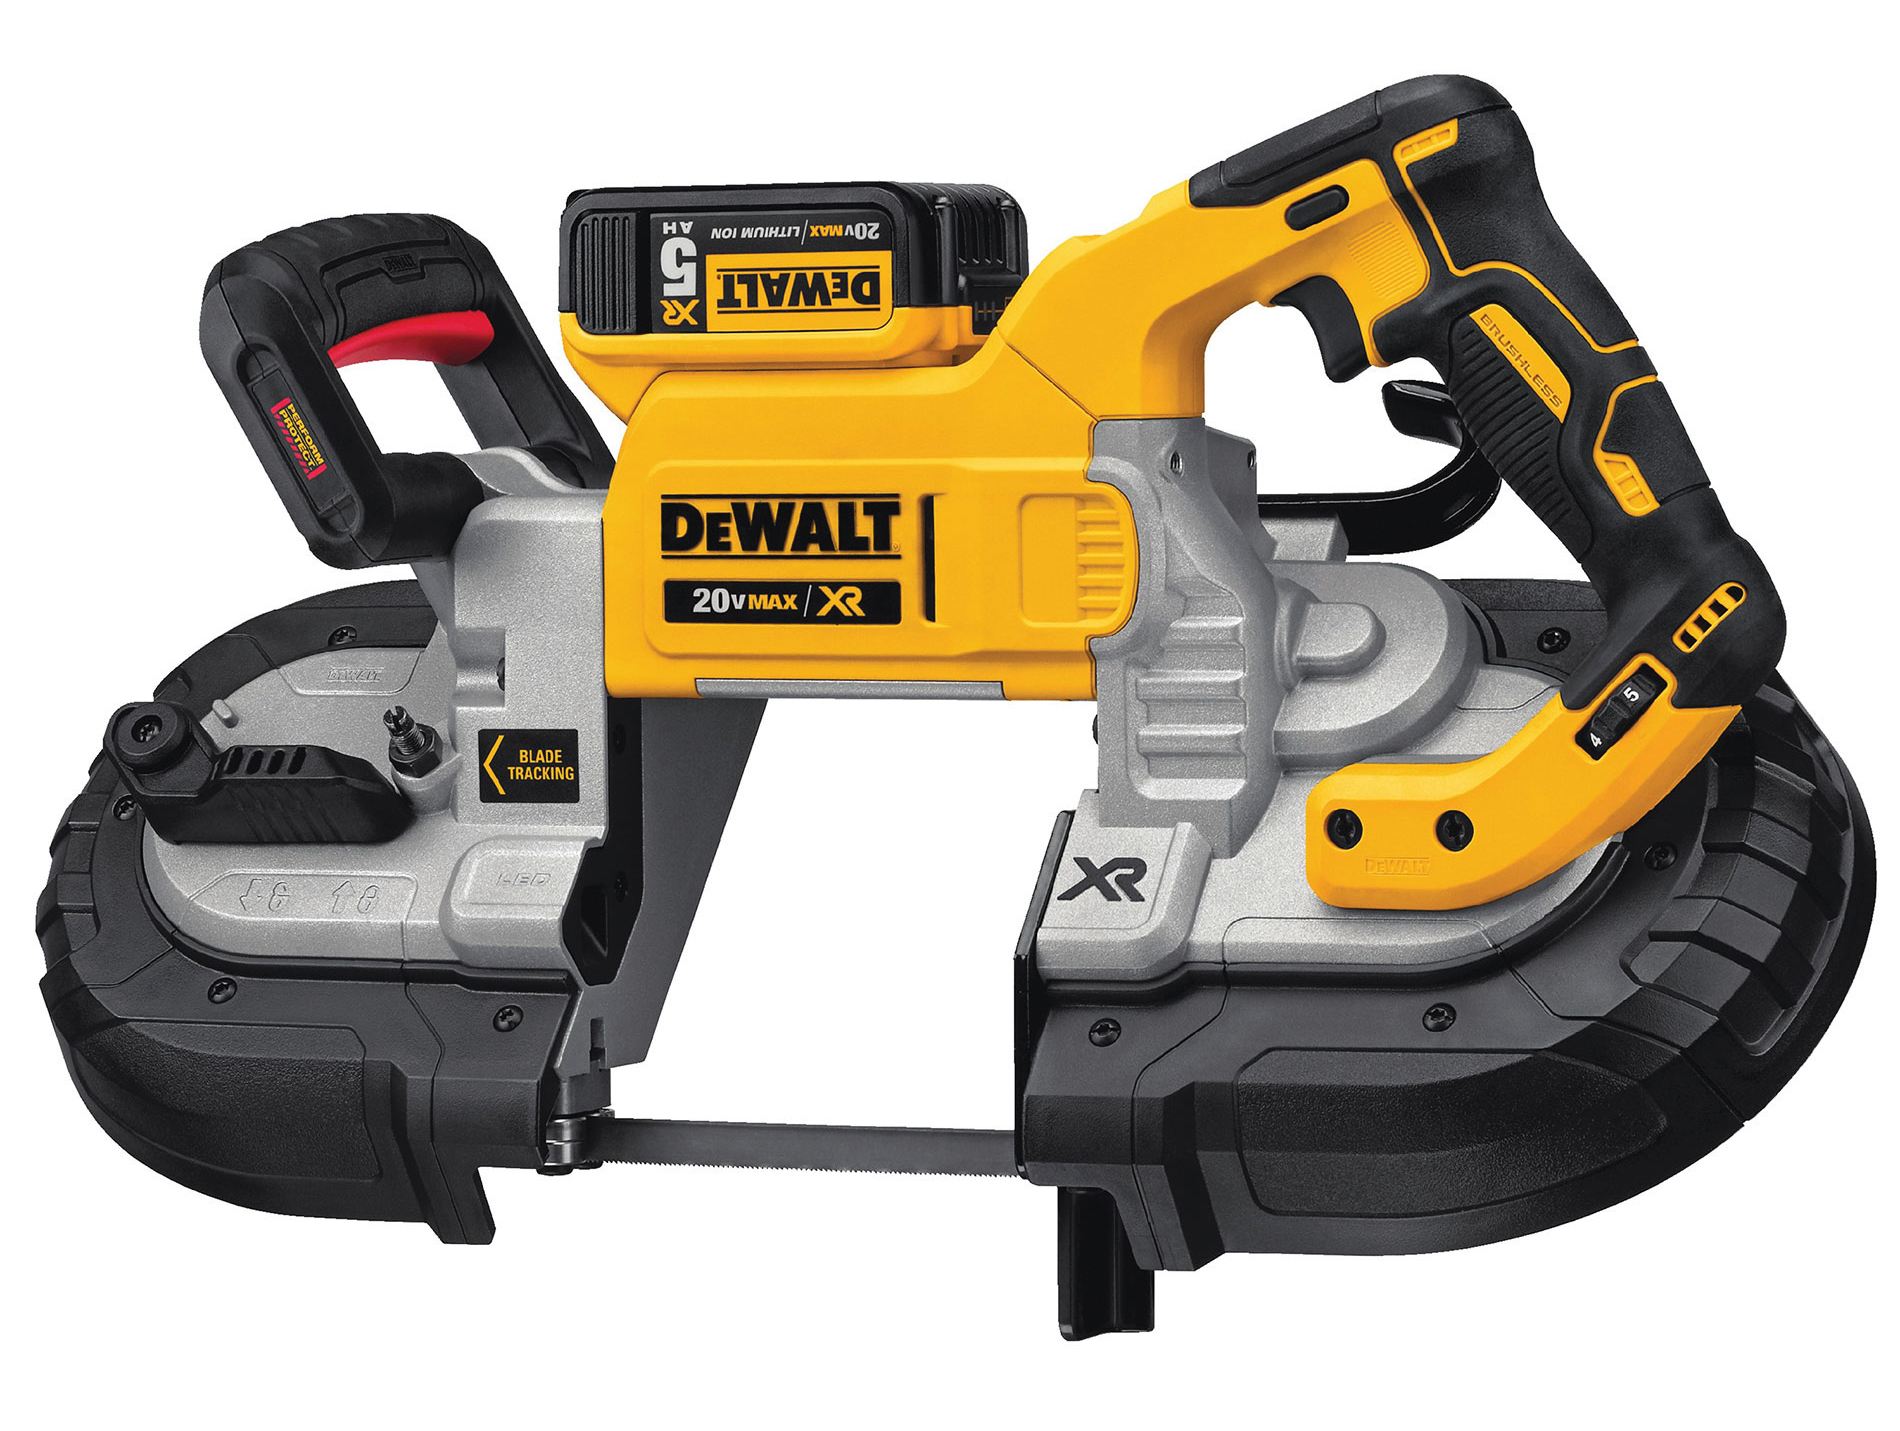 DeWalt's 2018 Showstopper